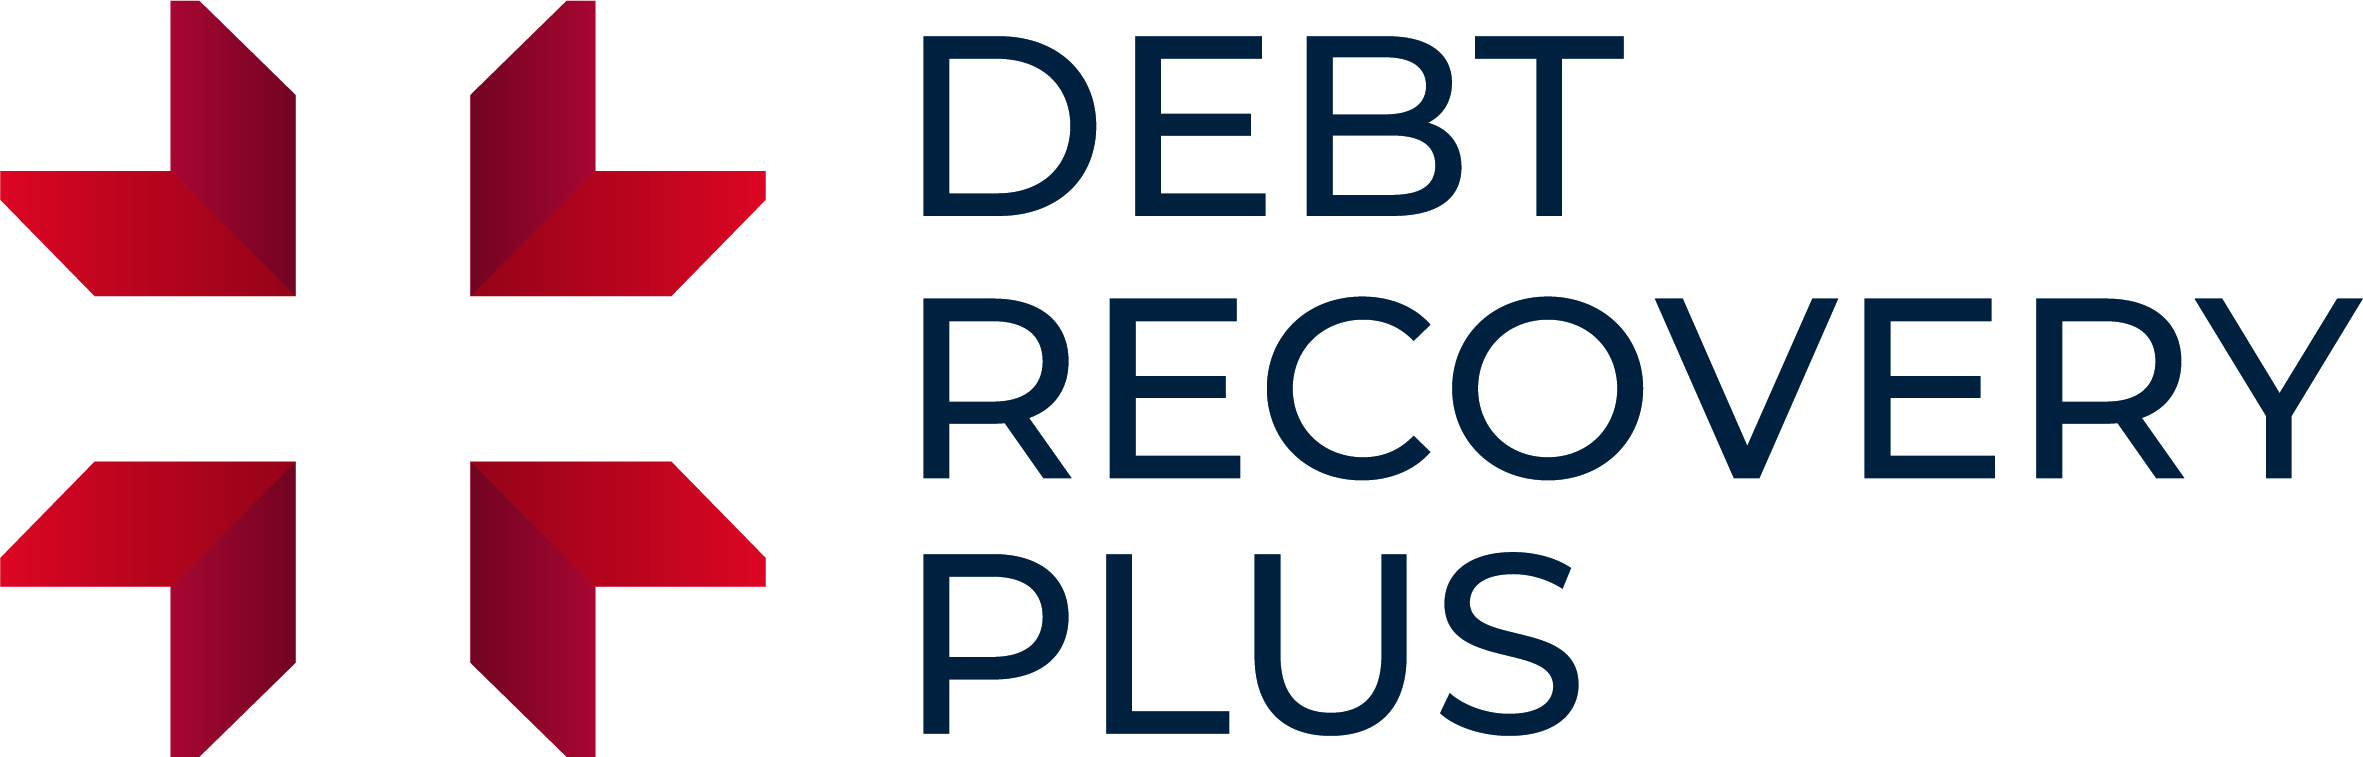 Debt Recovery Plus Ltd also t/as Parking Collection Services & Zenith Collections